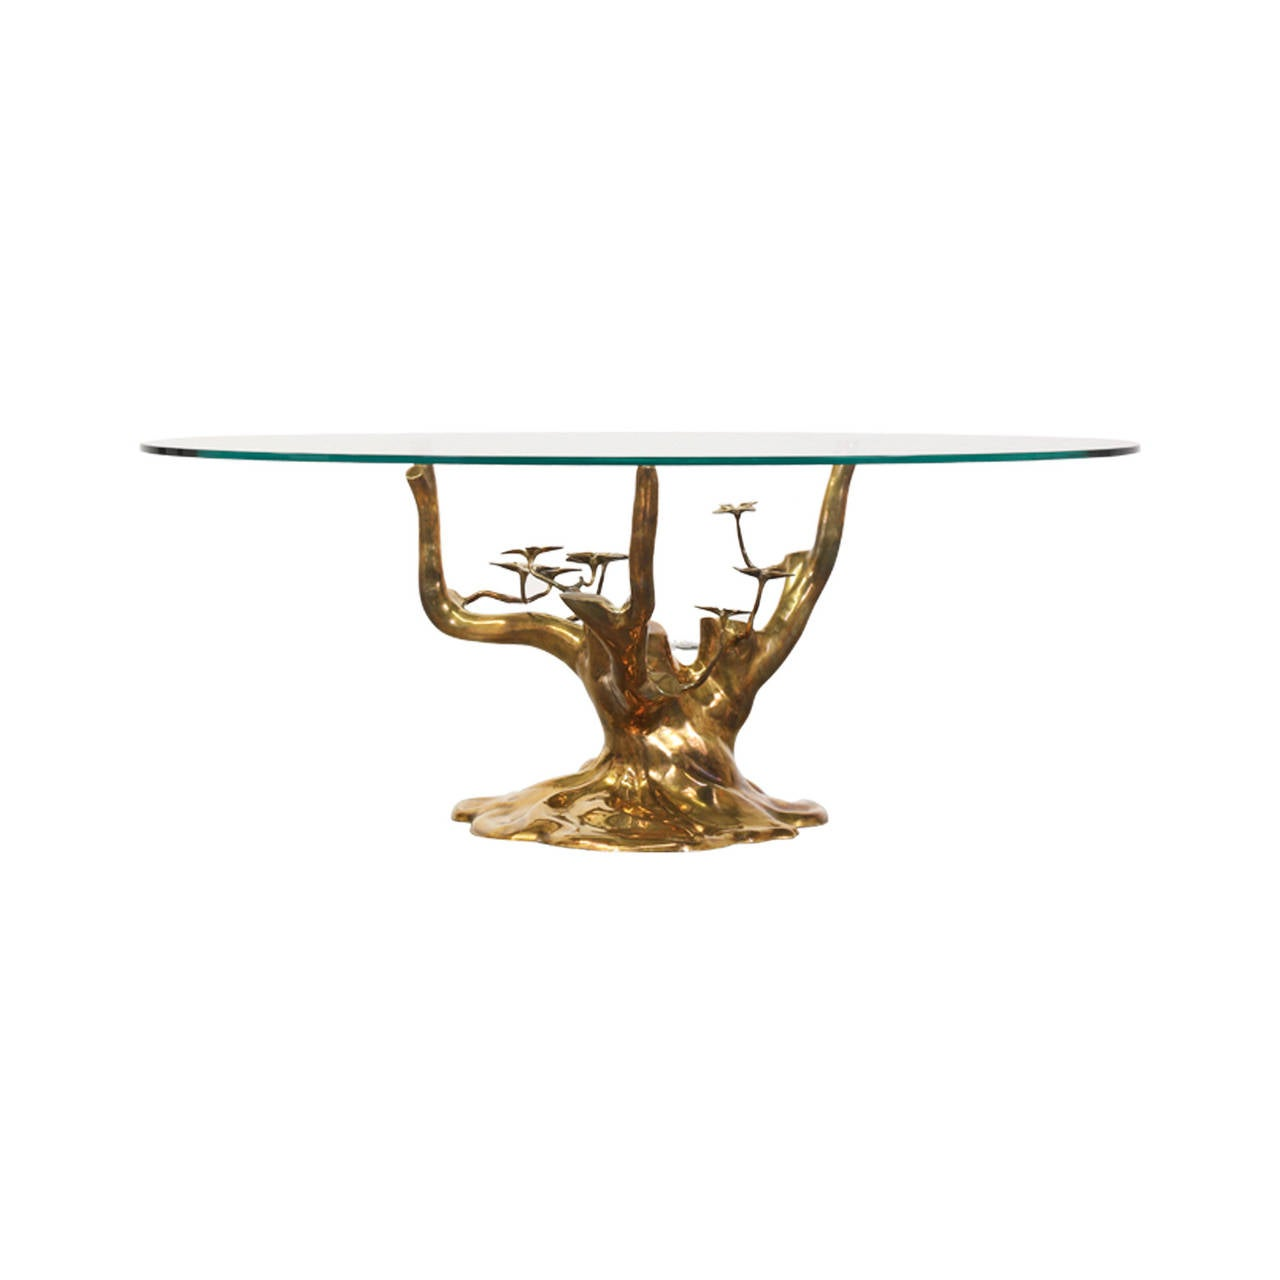 Vintage Brass Tree Sculpture Coffee Table Attributed To Willy Daro Image 2